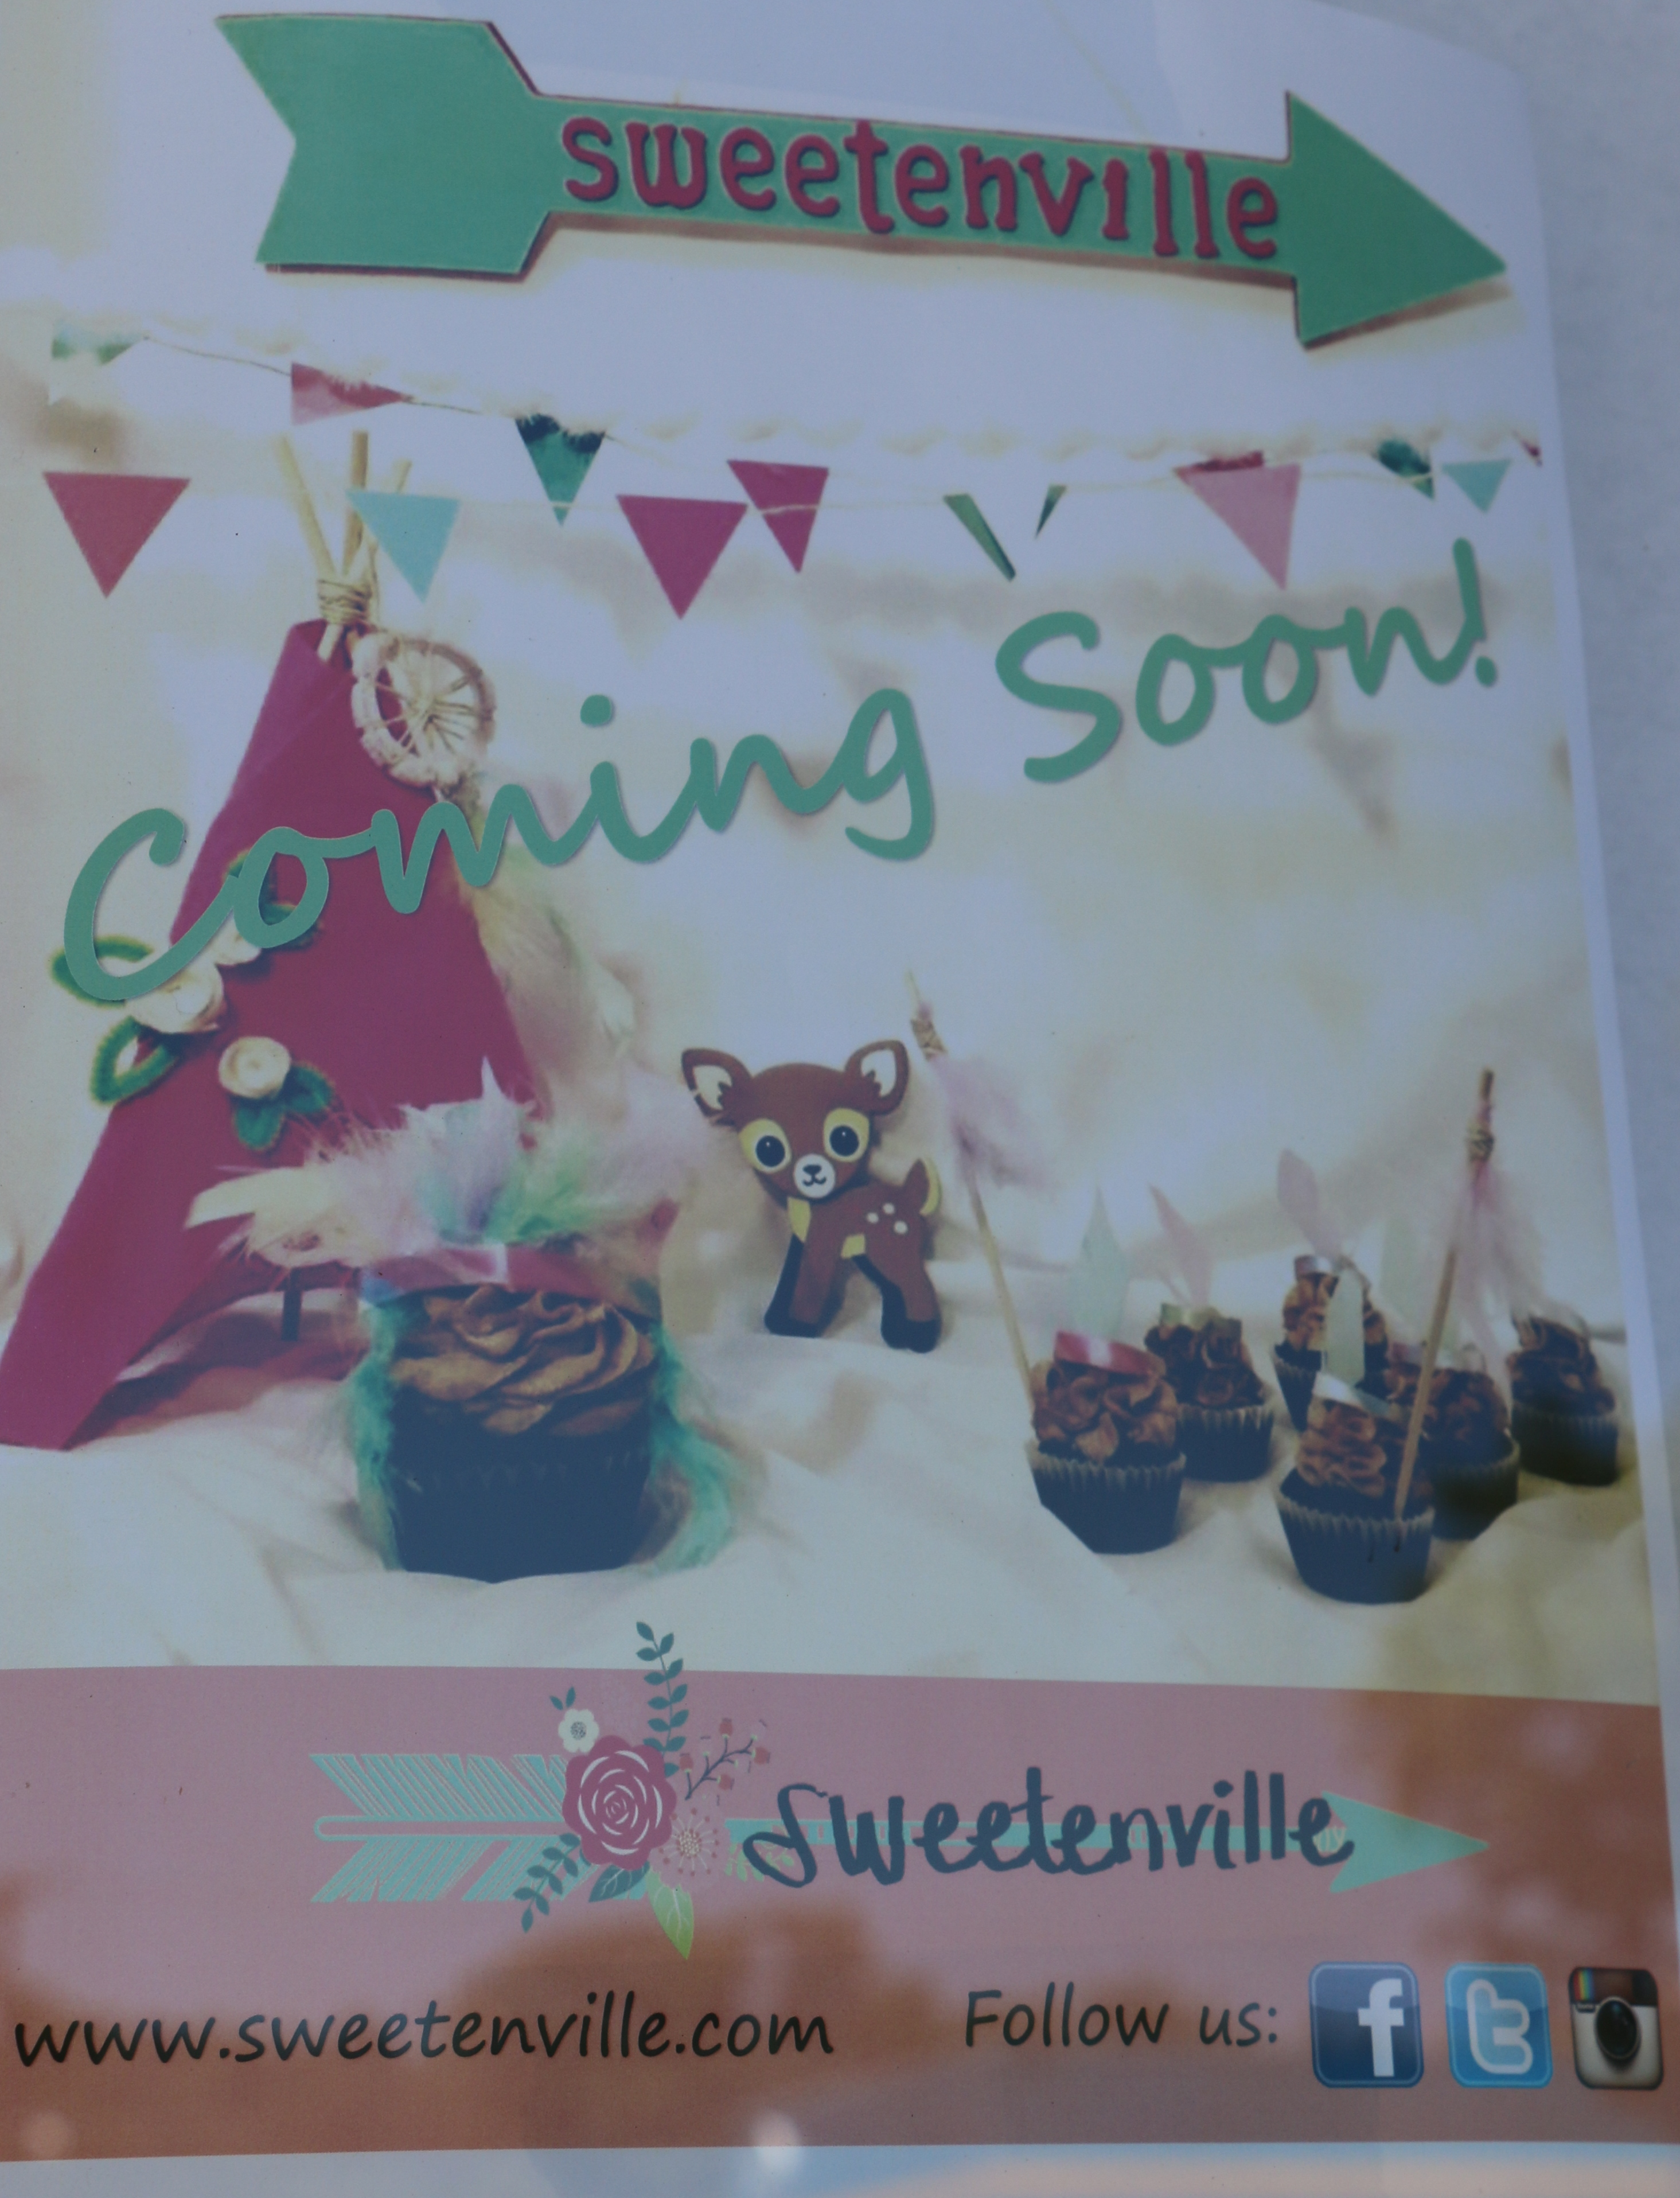 Stephenville gets a sweet spot, Sweetenville to open in fall